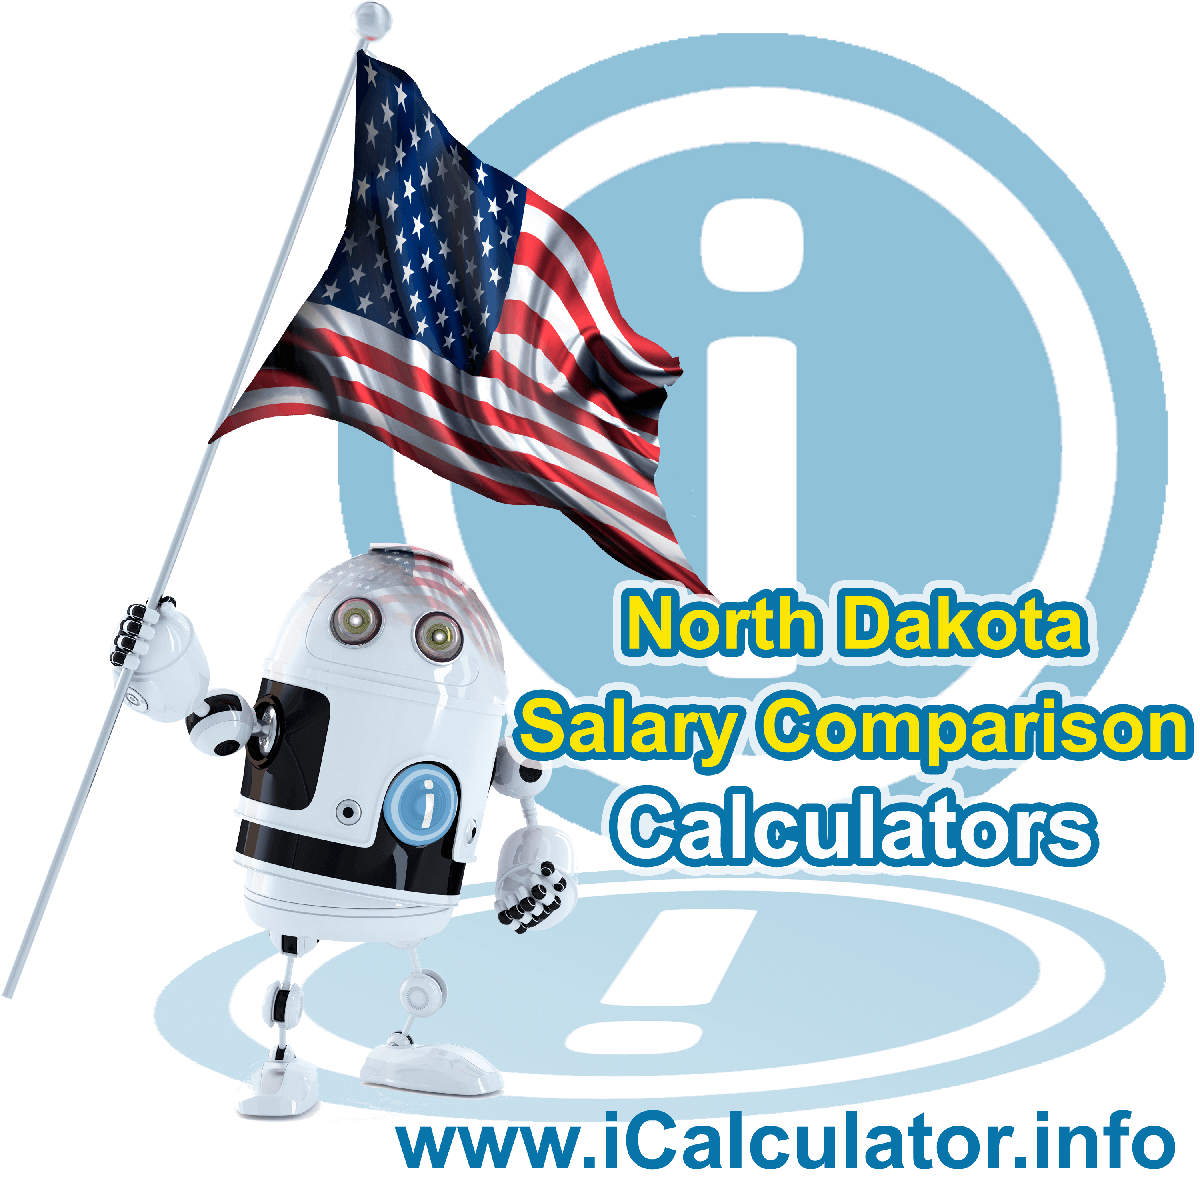 North Dakota Salary Comparison Calculator 2020 | iCalculator | The North Dakota Salary Comparison Calculator allows you to quickly calculate and compare upto 6 salaries in North Dakota or between other states for the 2020 tax year and historical tax years. Its an excellent tool for jobseekers, pay raise comparison and comparison of salaries between different US States